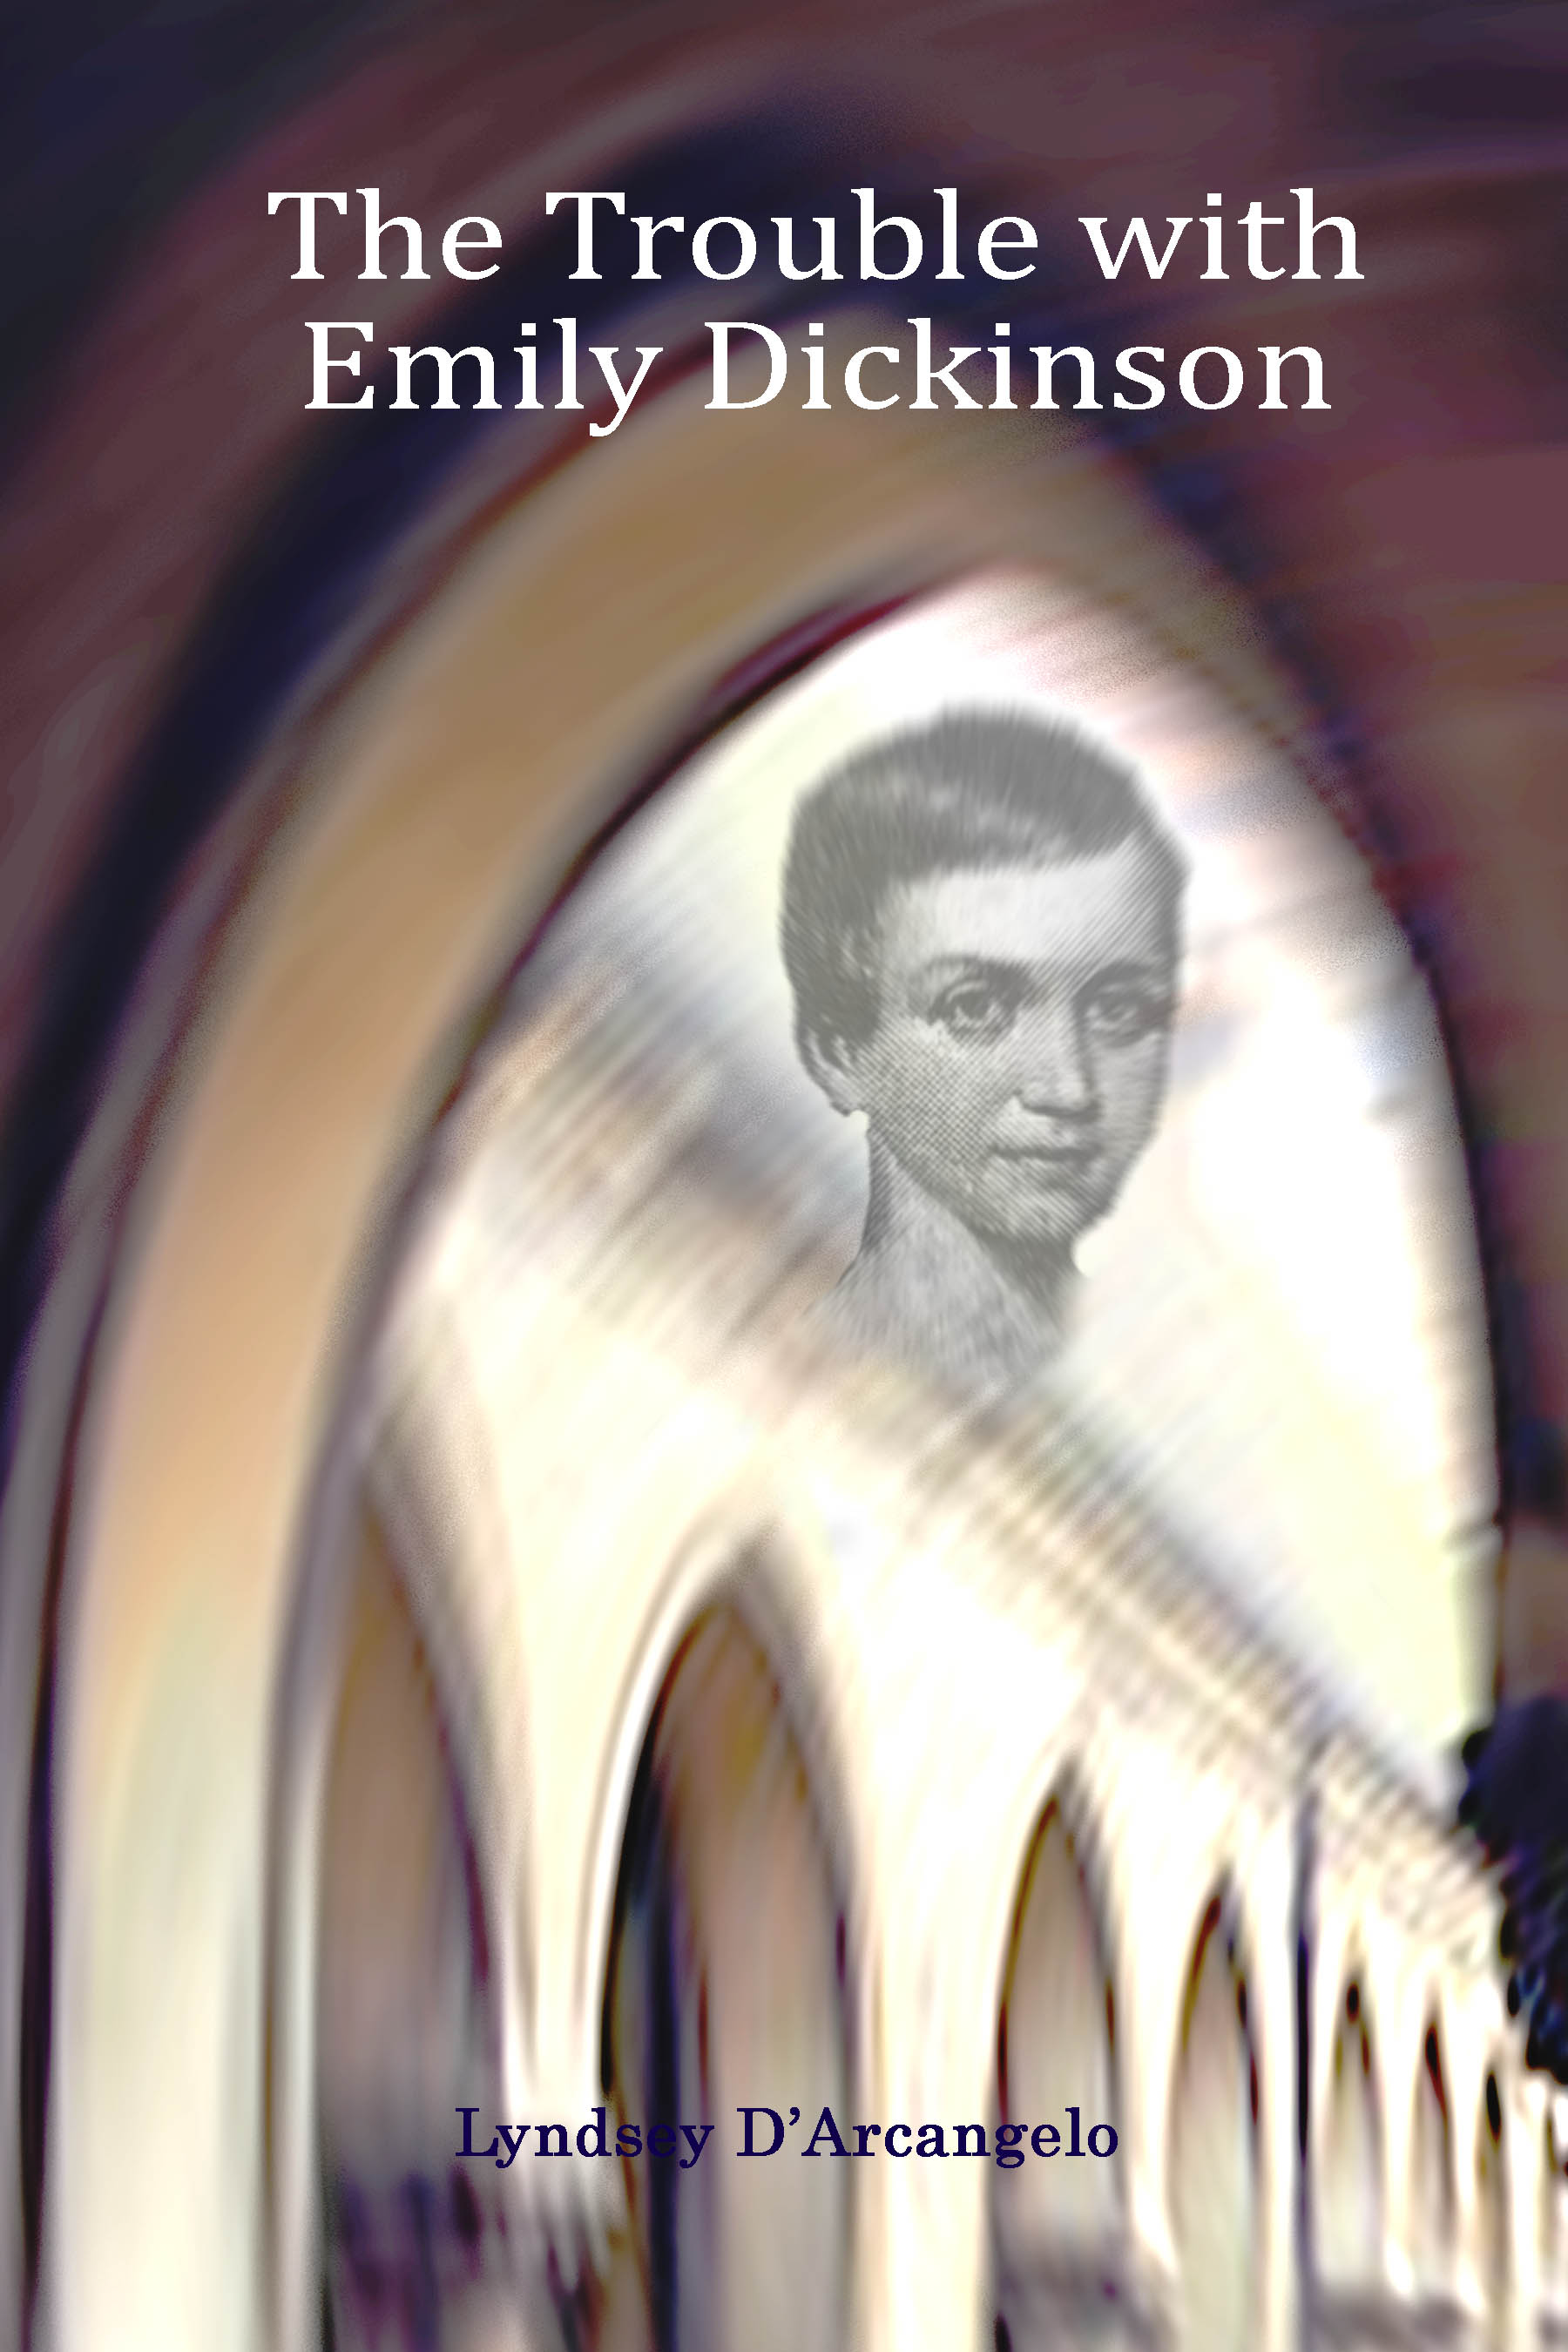 emily dickinson a face devoid of A face devoid of love or grace,a hateful, hard, successful face, a face with which a stonewould feel as thoroughly at easeas were they old acquaintances,— first time together thrown.